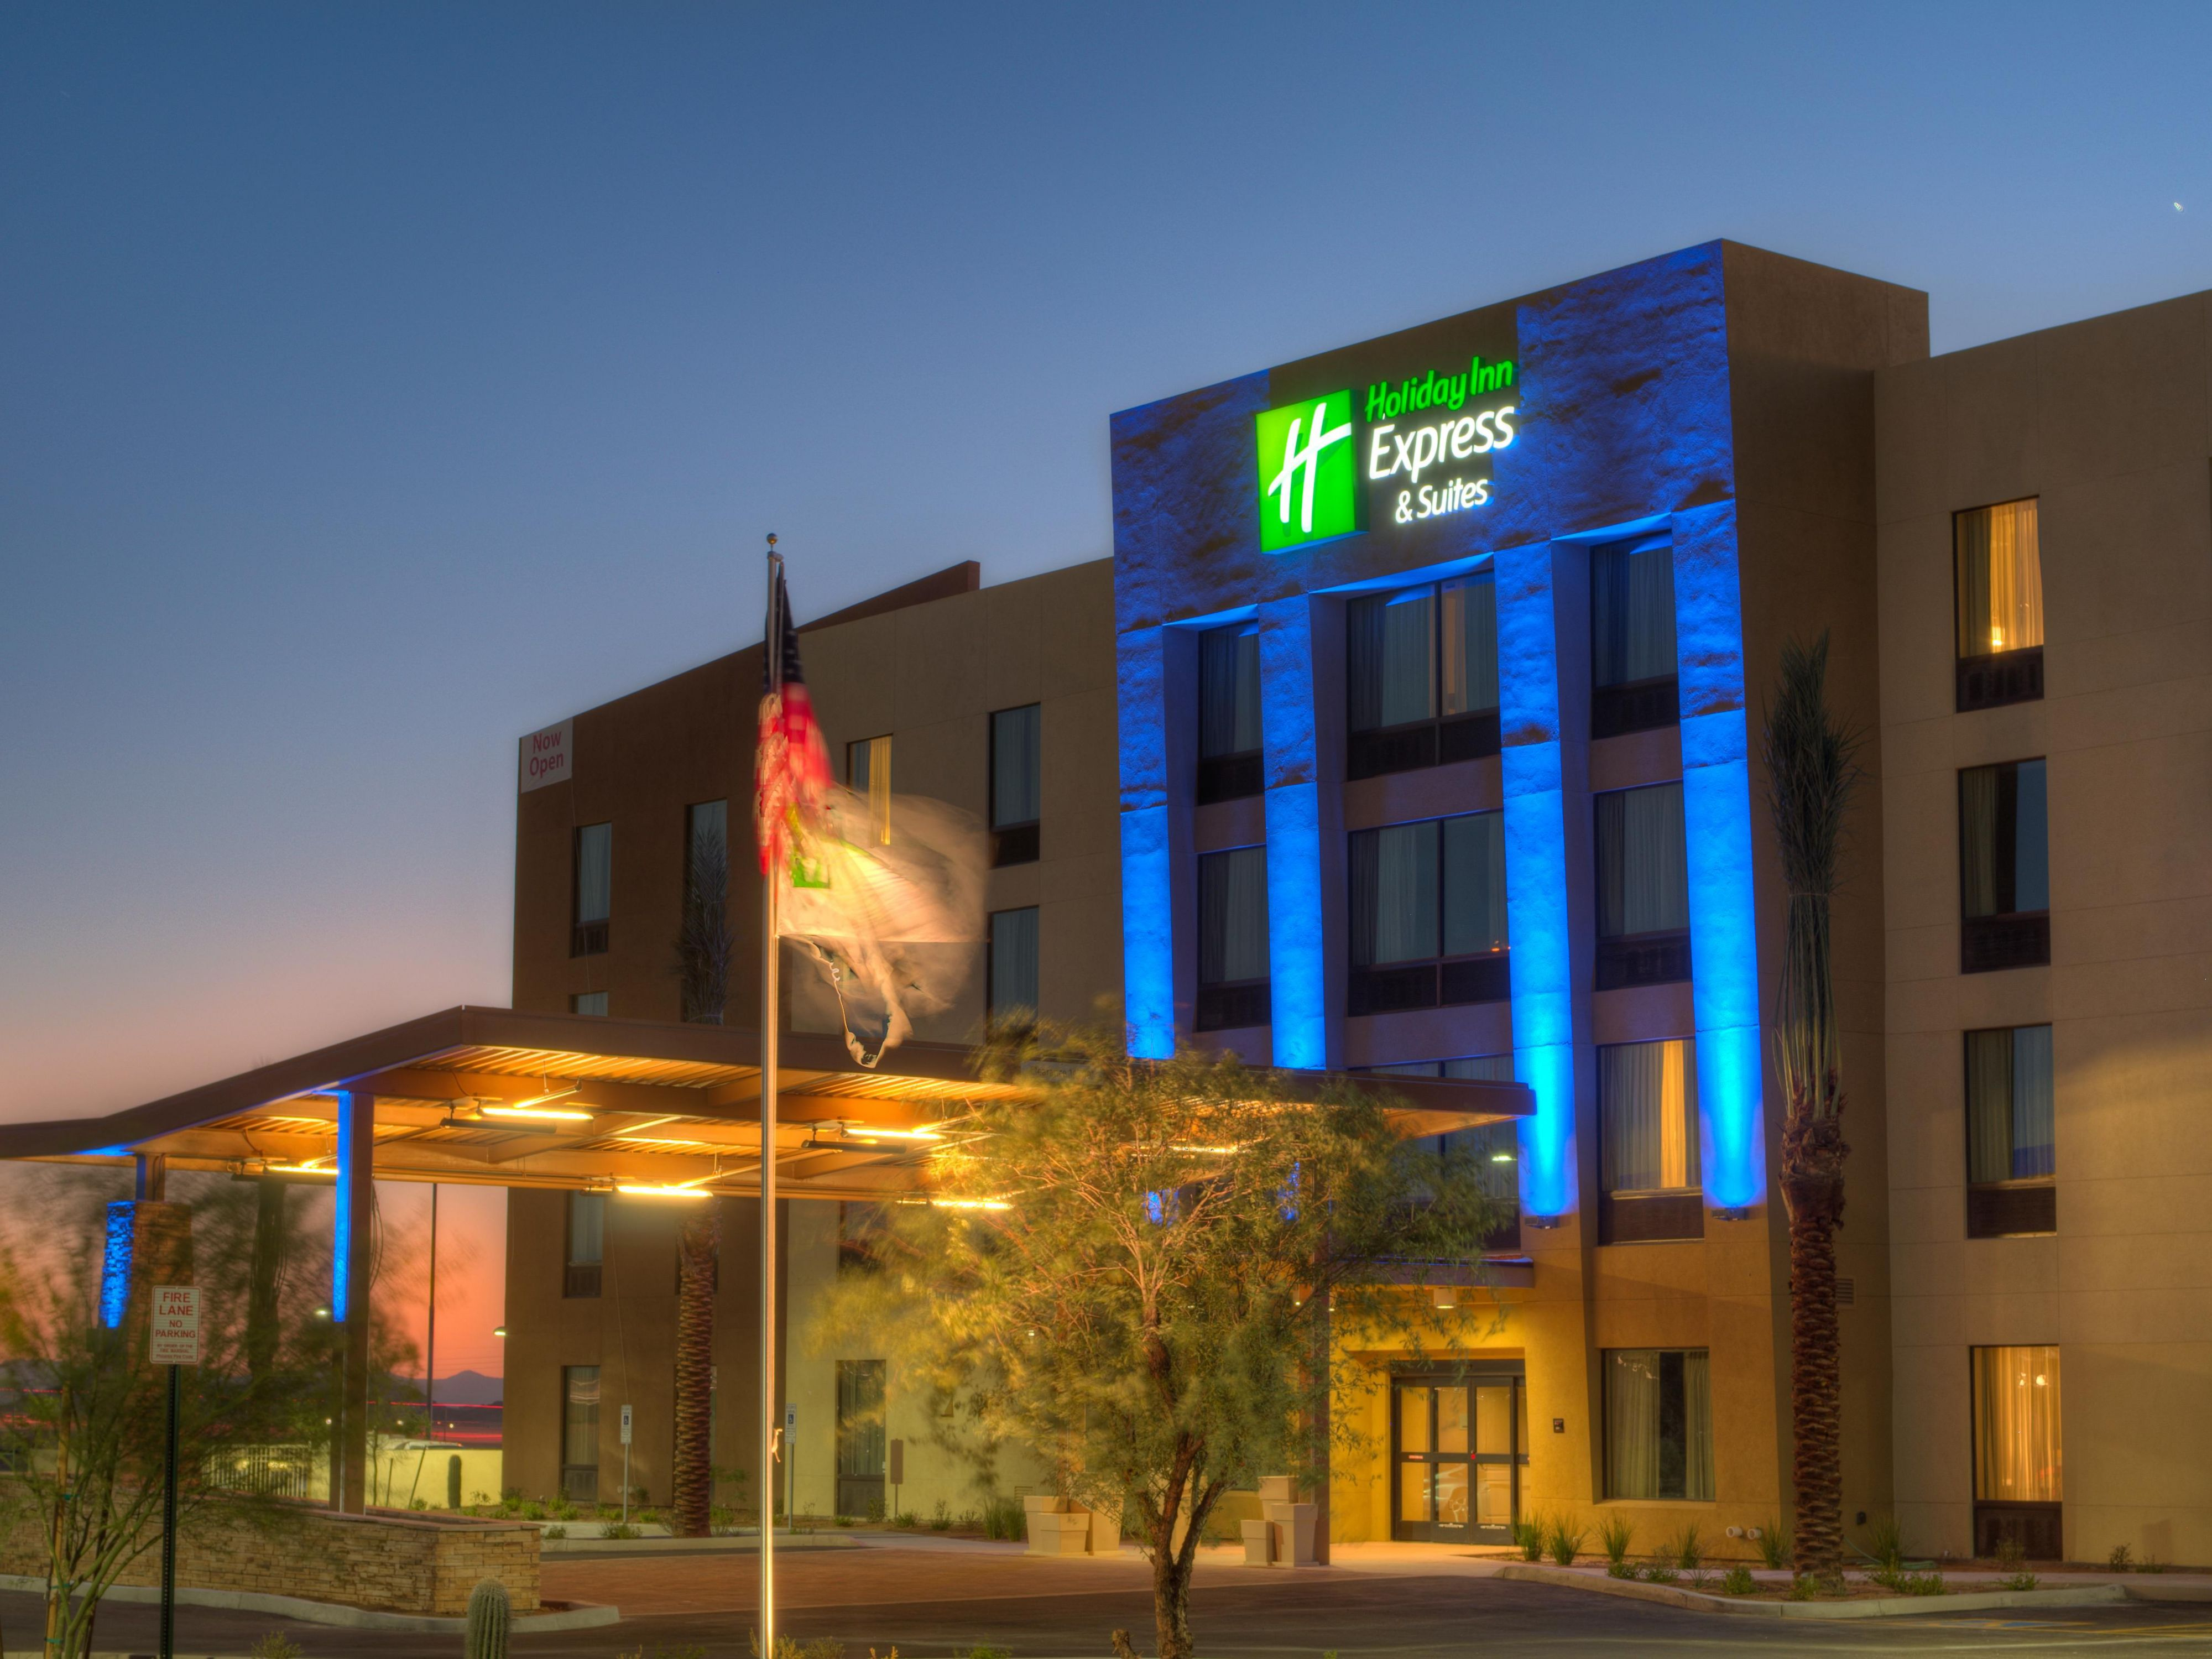 New hotel located at Loop 101 and Tatum Blvd